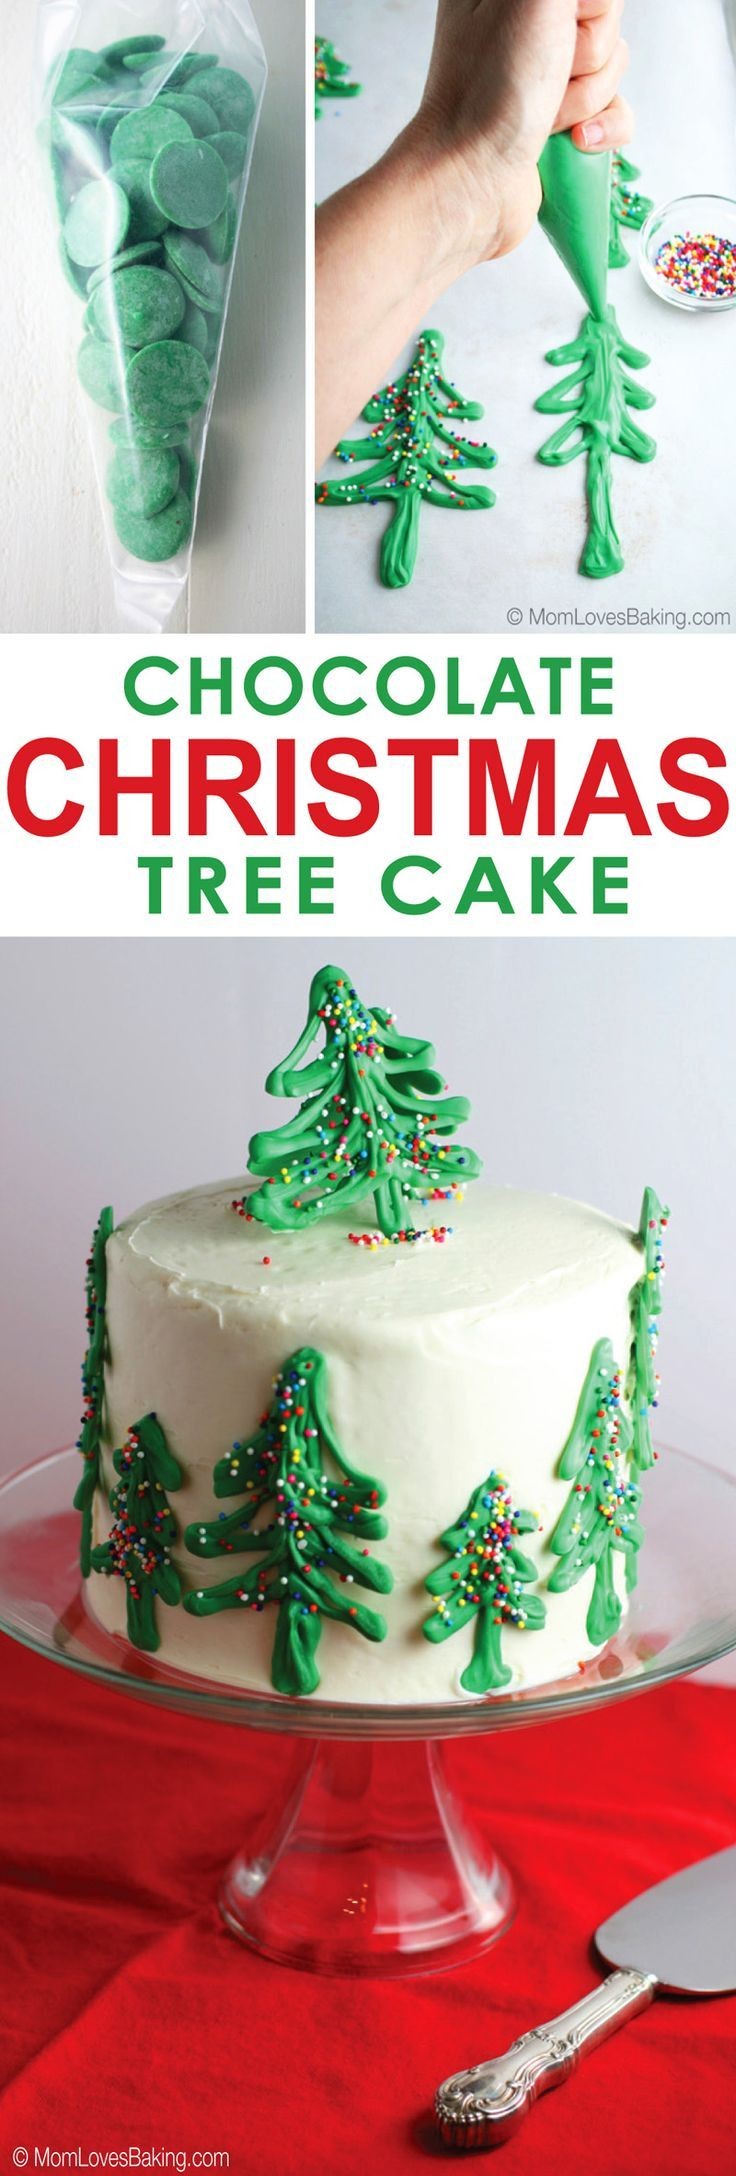 Need a fabulous dessert for the Christmas party? How about this Chocolate Christmas Tree Cake. It's simple to make and your friends will be so impressed!‬